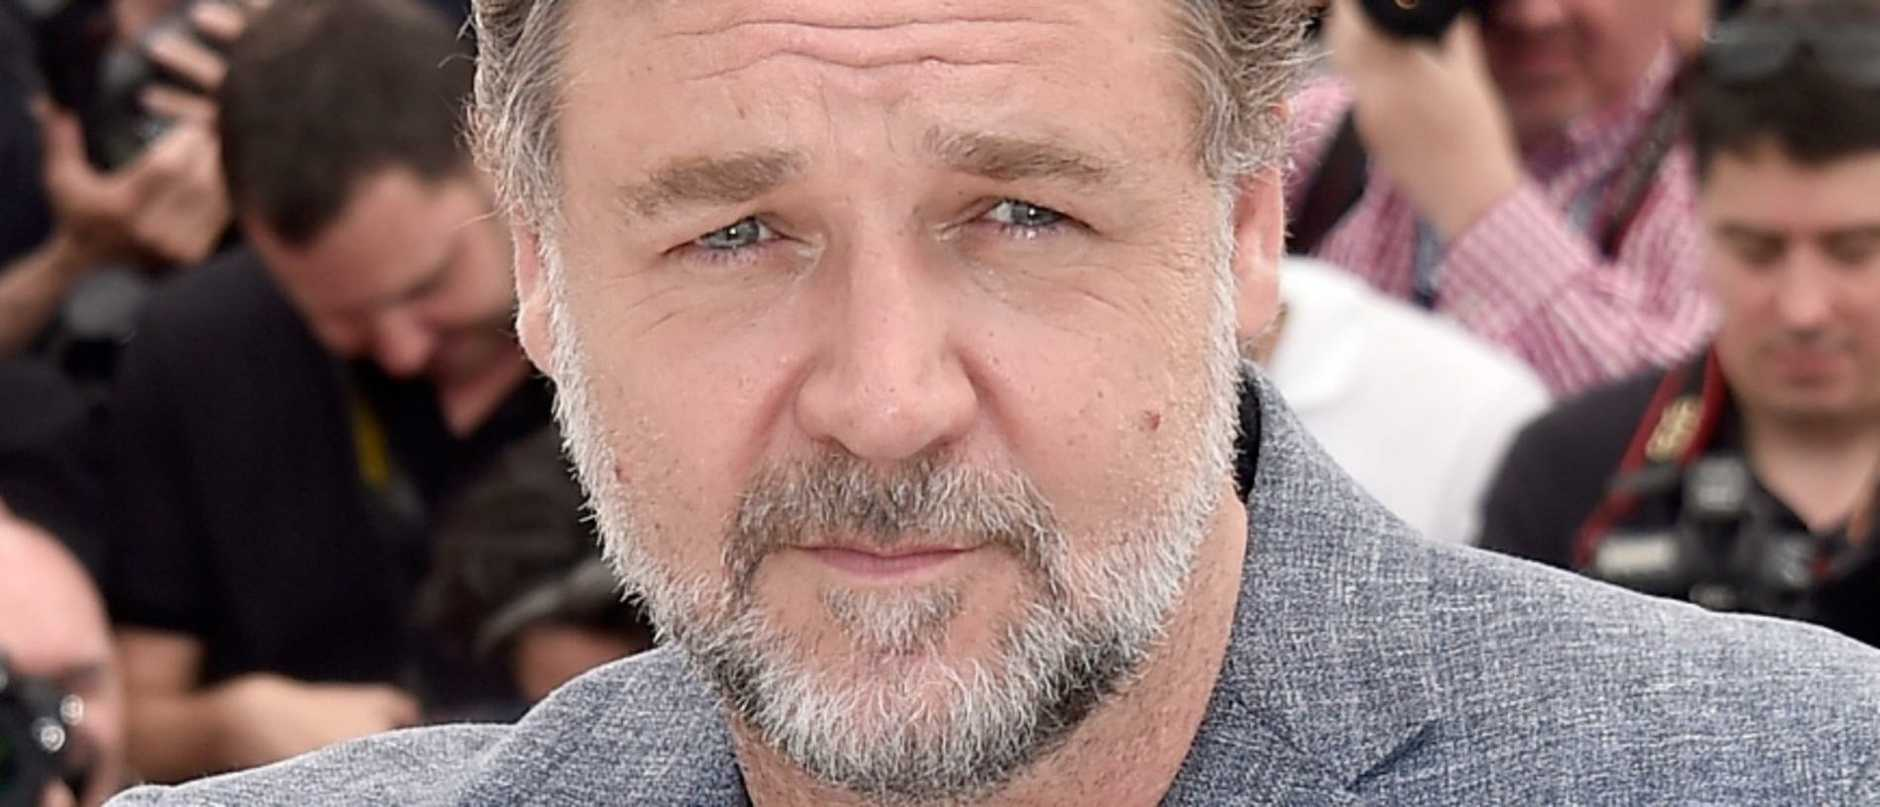 Hollywood heavyweight Russell Crowe has announced the sad passing of his father, John Alexander Crowe, at the age of 85.